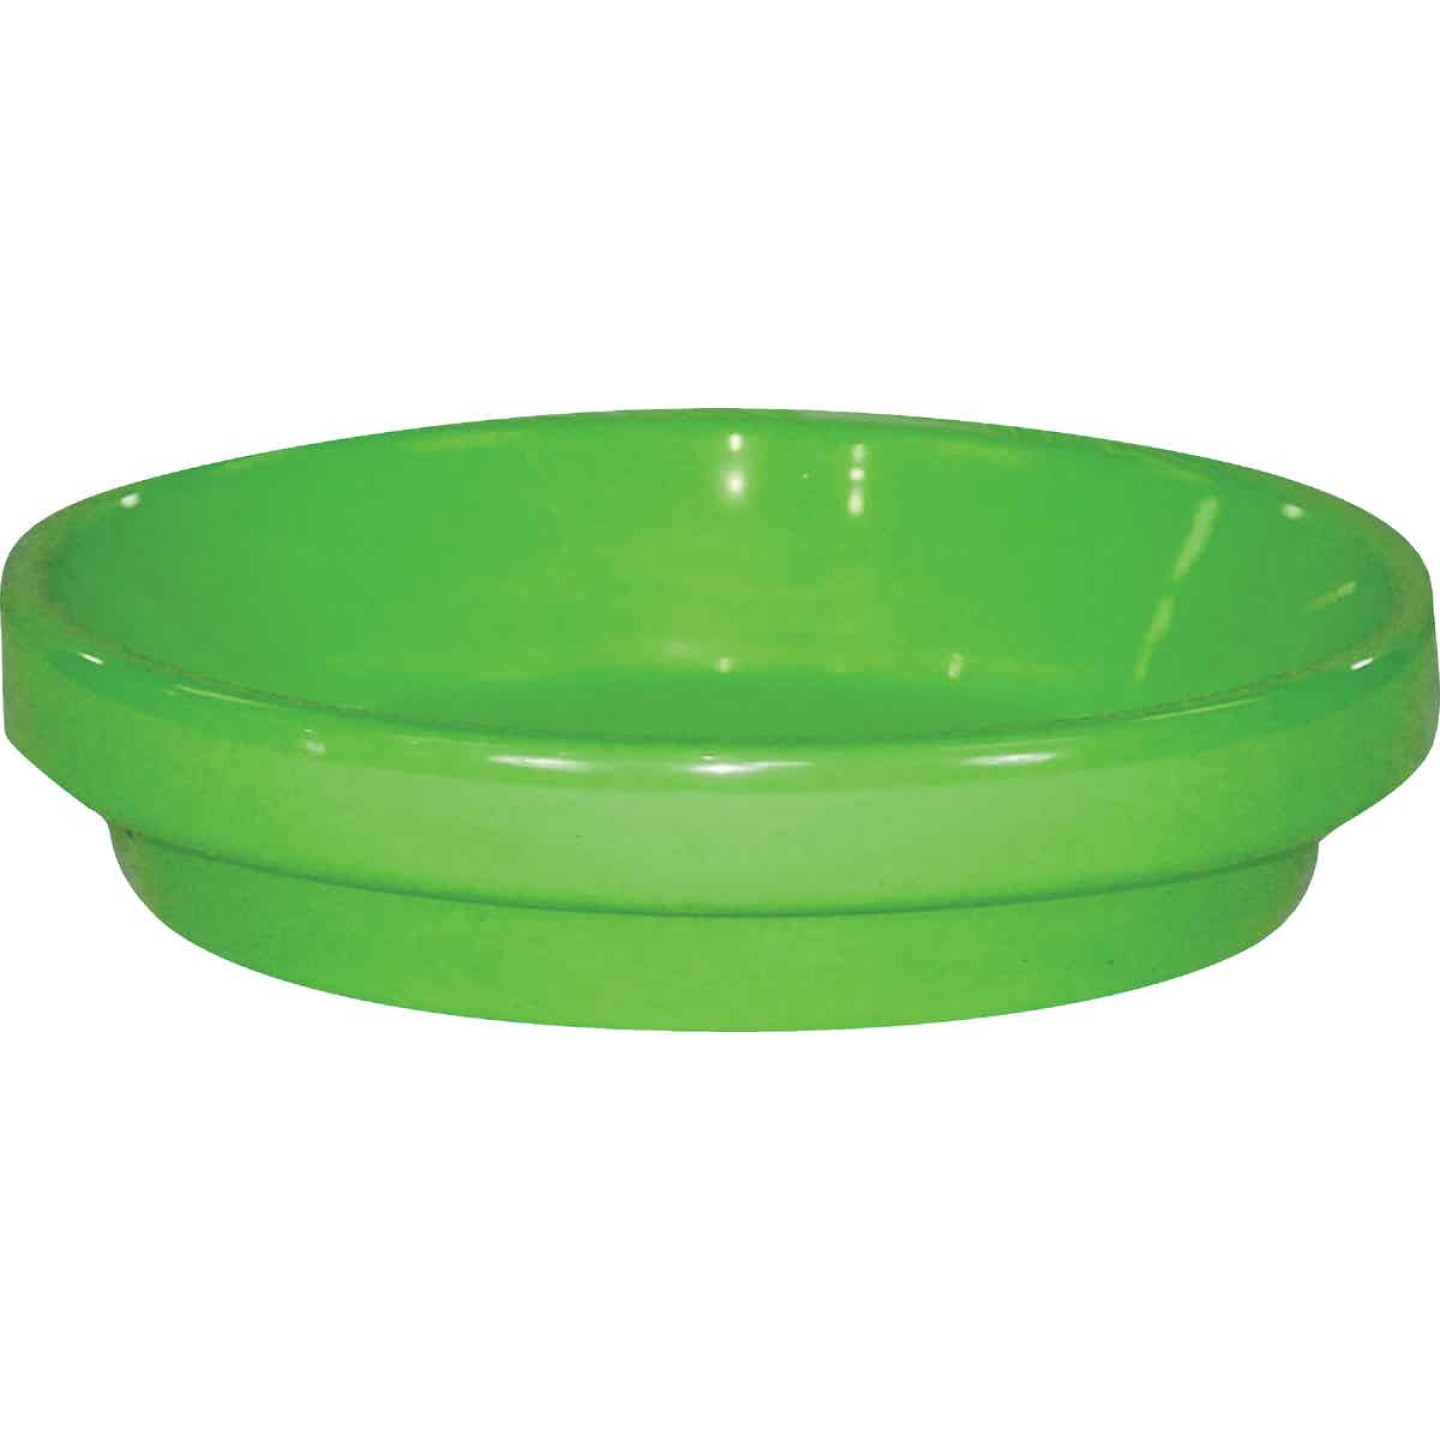 Ceramo Spring Fever 8 In. Bright Green Clay Flower Pot Saucer Image 1